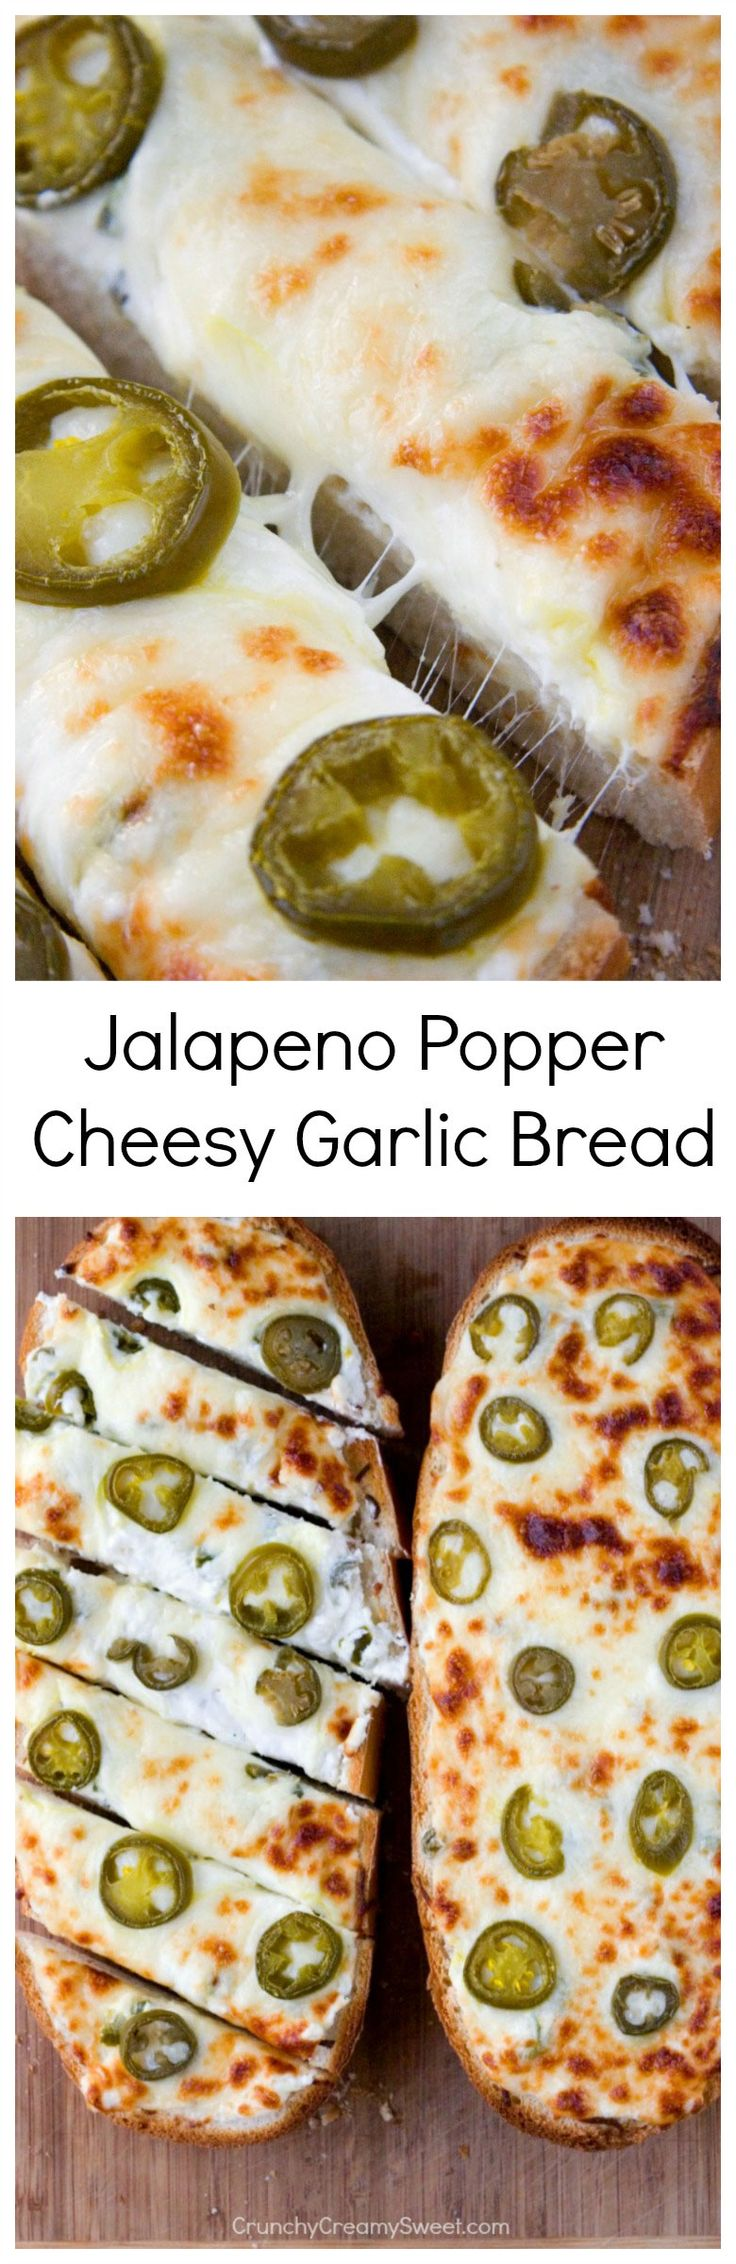 Jalapeno Popper Cheesy Garlic Bread | 25+ Game Day Foods